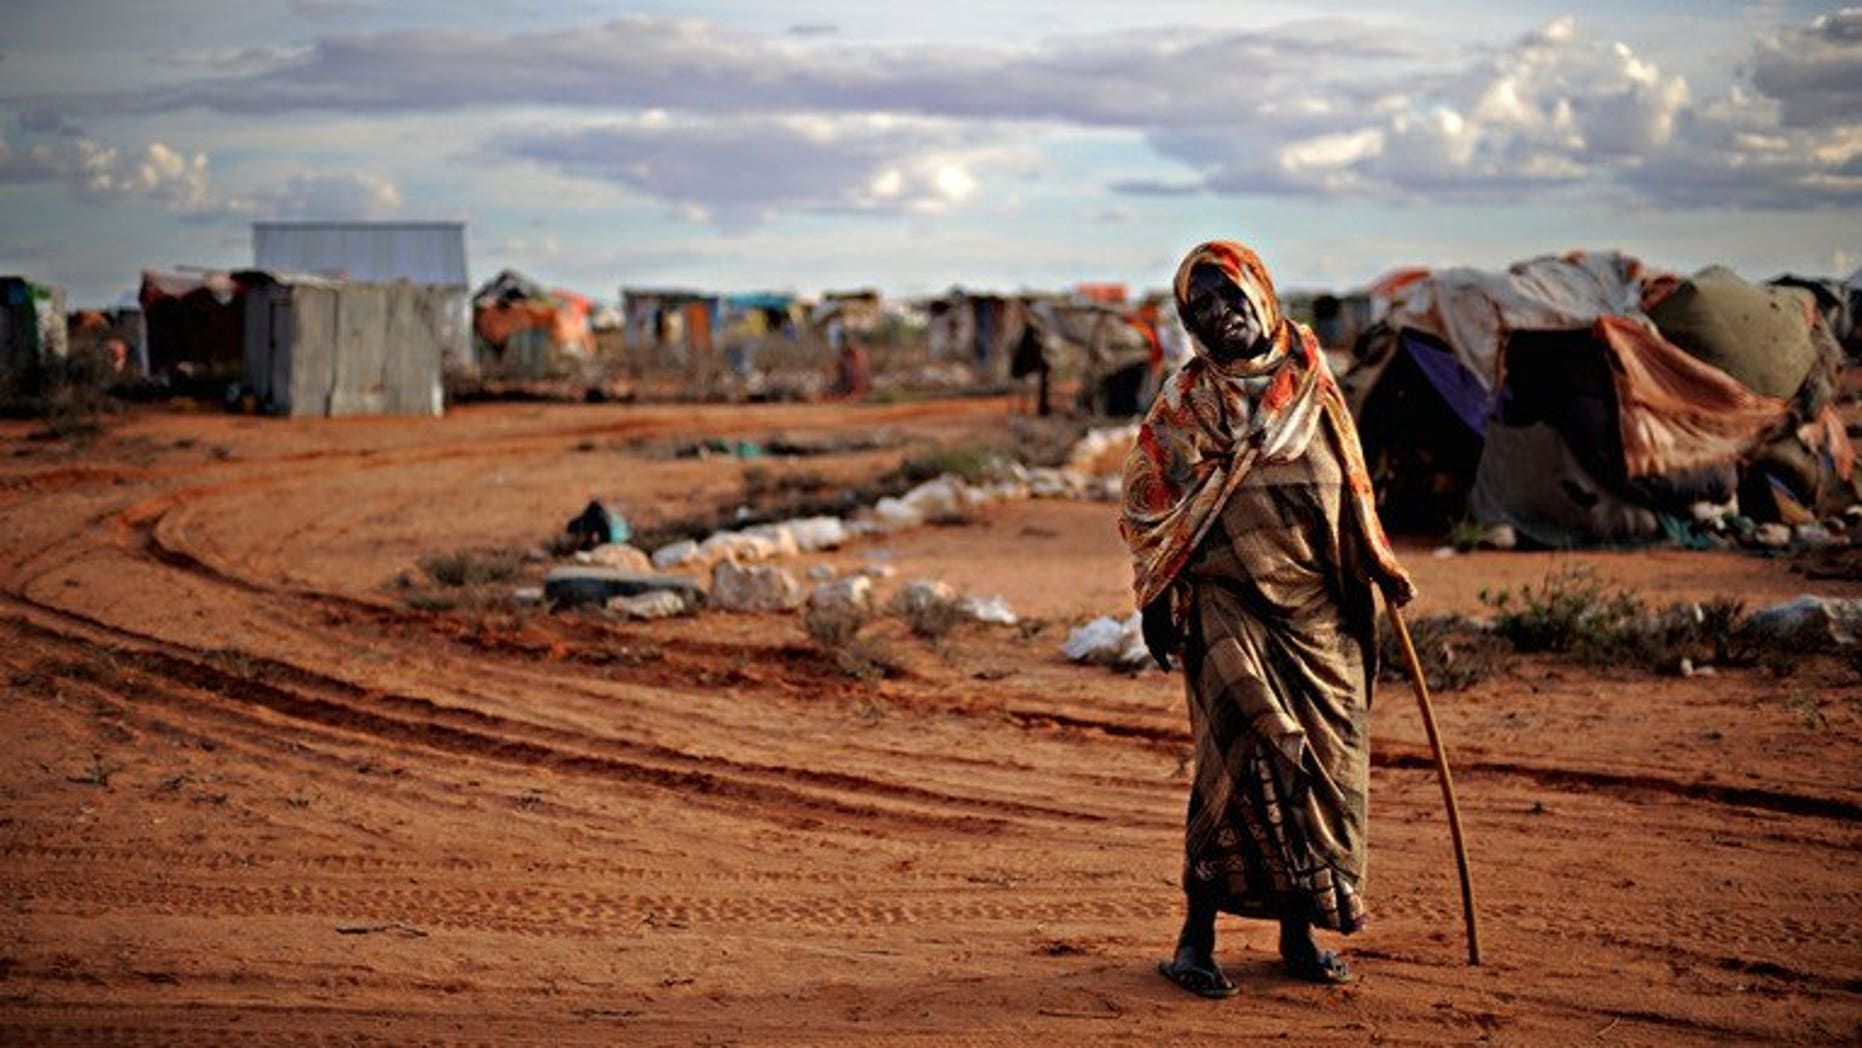 An elderly woman displaced by violence walks in a refugee camp in the northern breakaway state of Puntland on October 17, 2009. Somalia's semi-autonomous northern region has suspended long-awaited local elections, its government said, saying the risk of violence was too great to hold them.